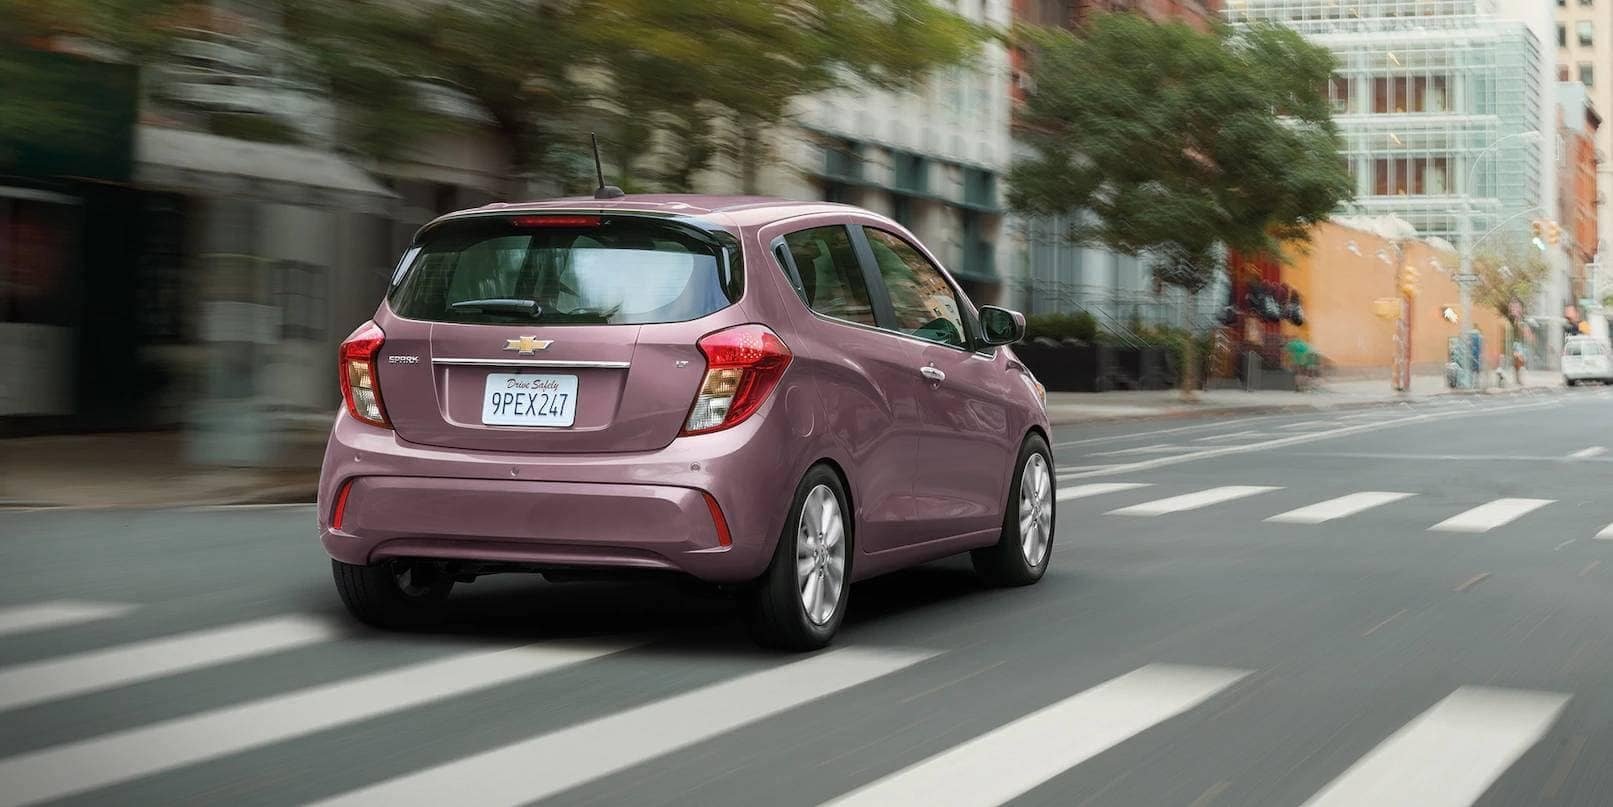 2019 Chevrolet Spark rear on road